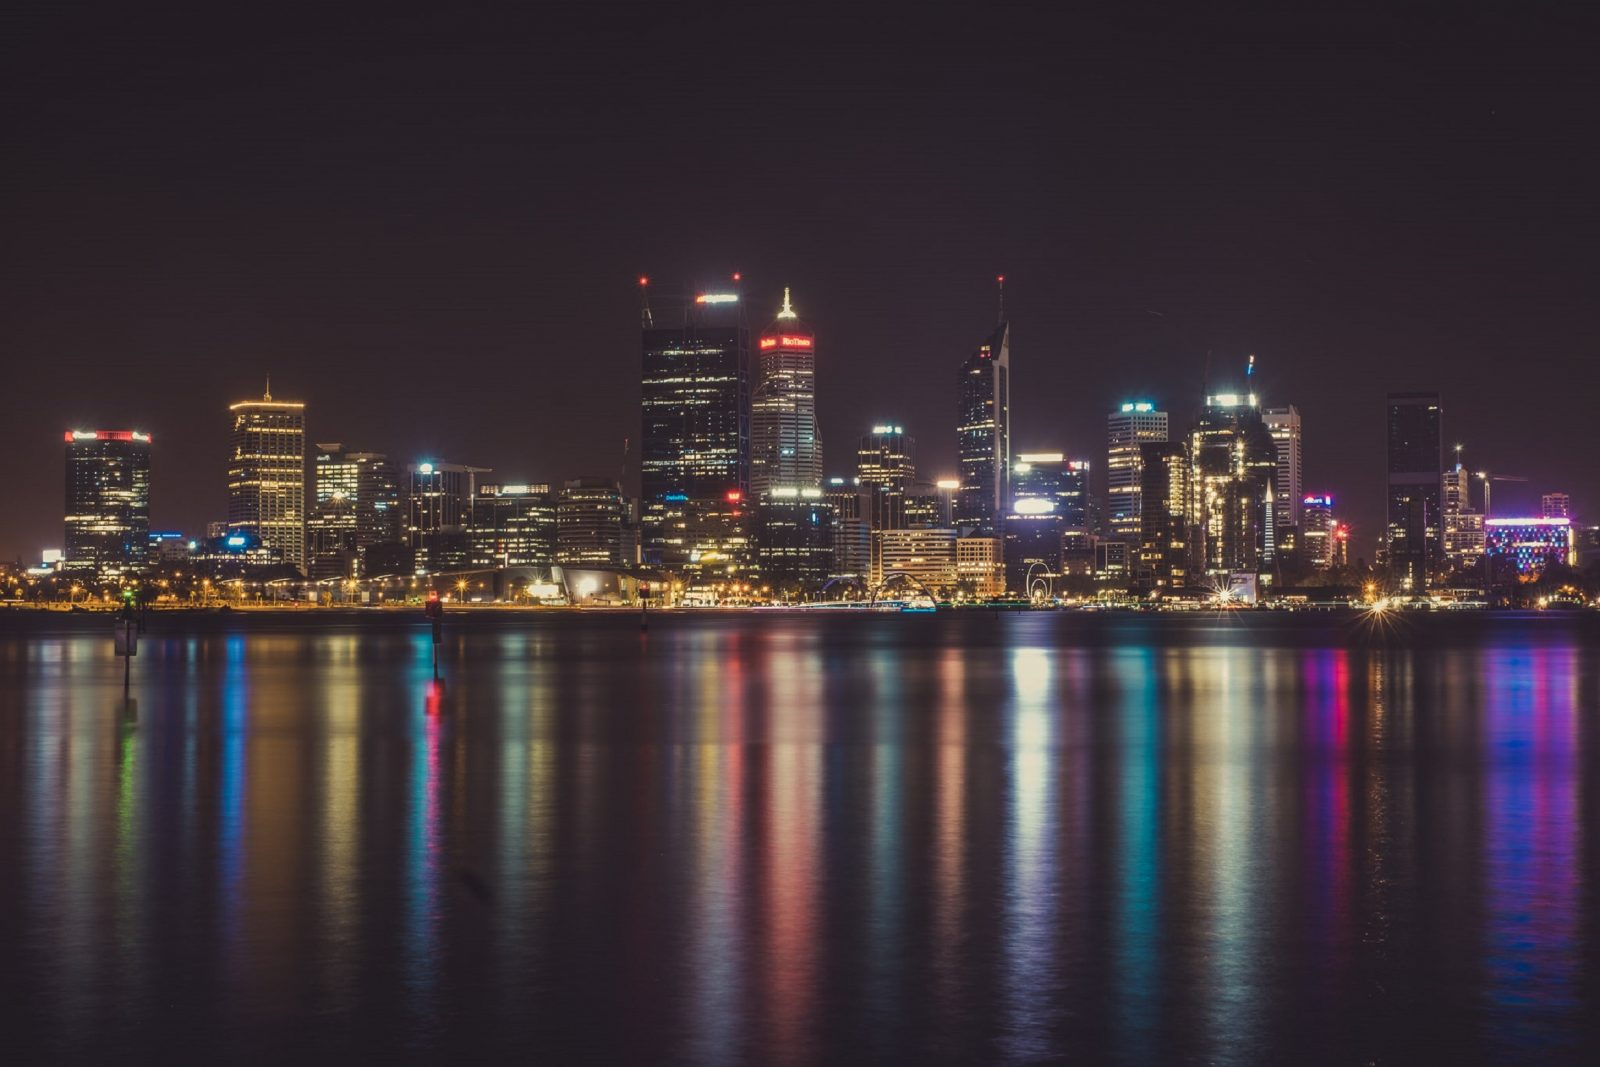 Night Photography Class (Perth), Perth, Western Australia